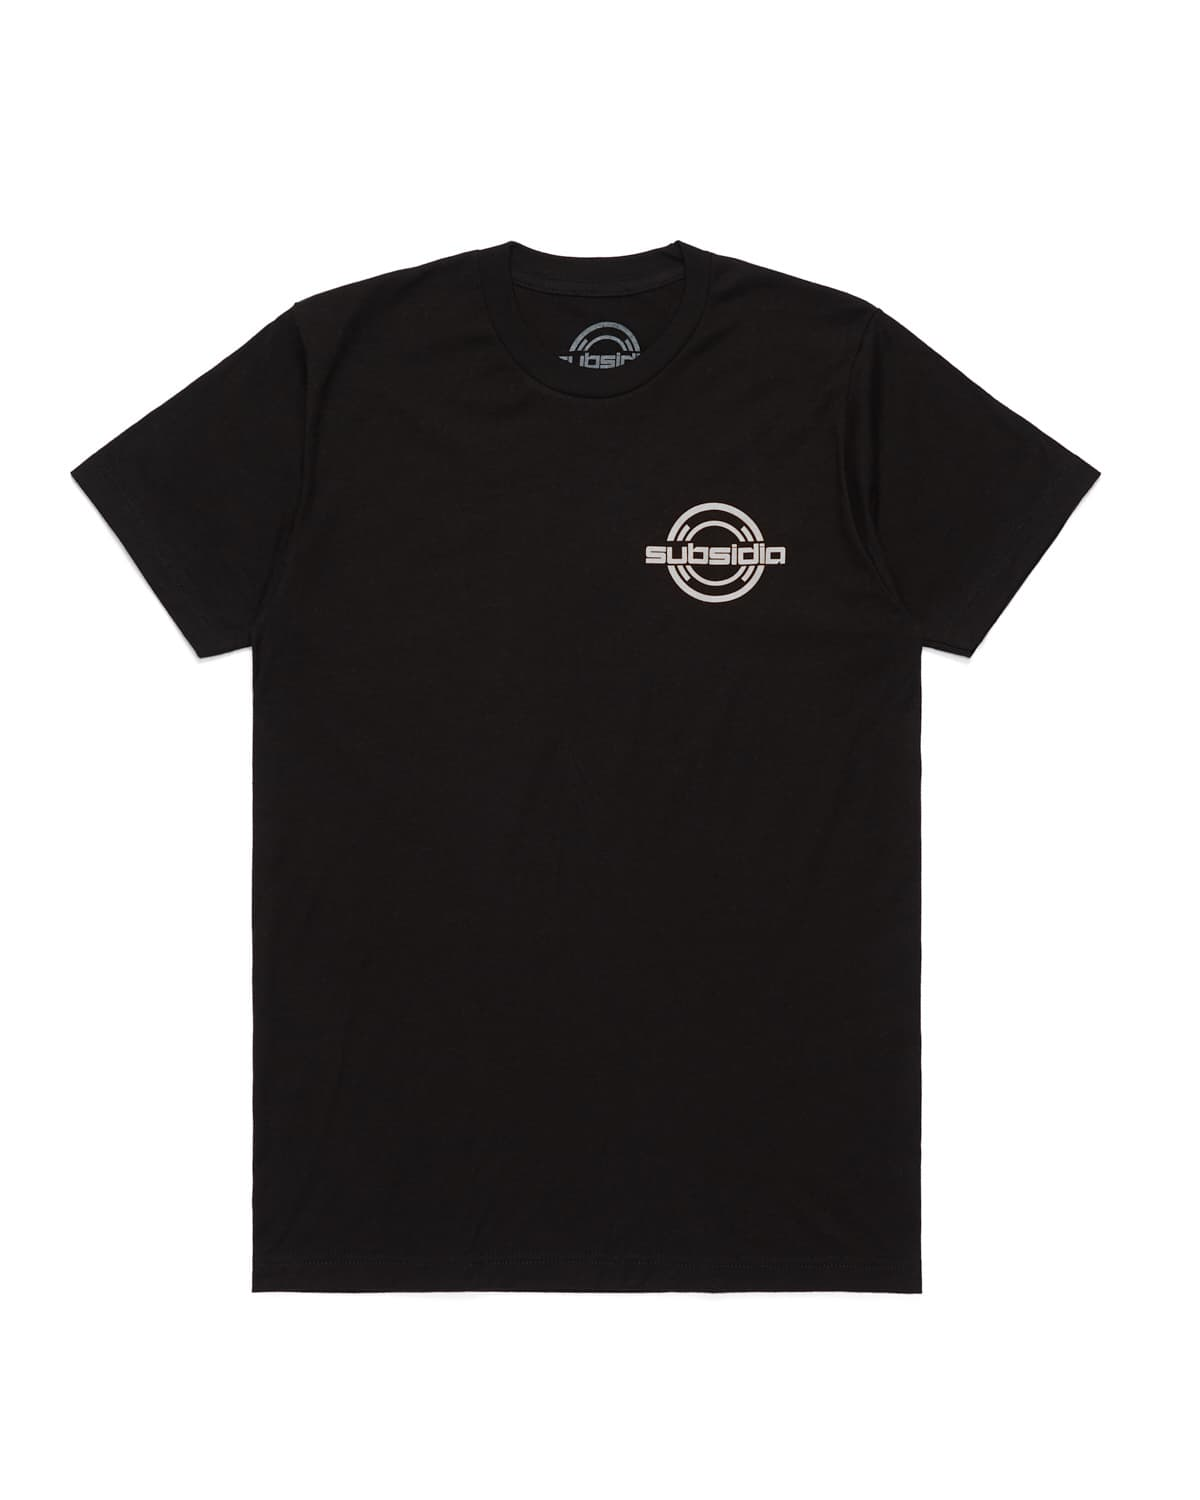 Subsidia 'Small Logo' Tee - Black/White